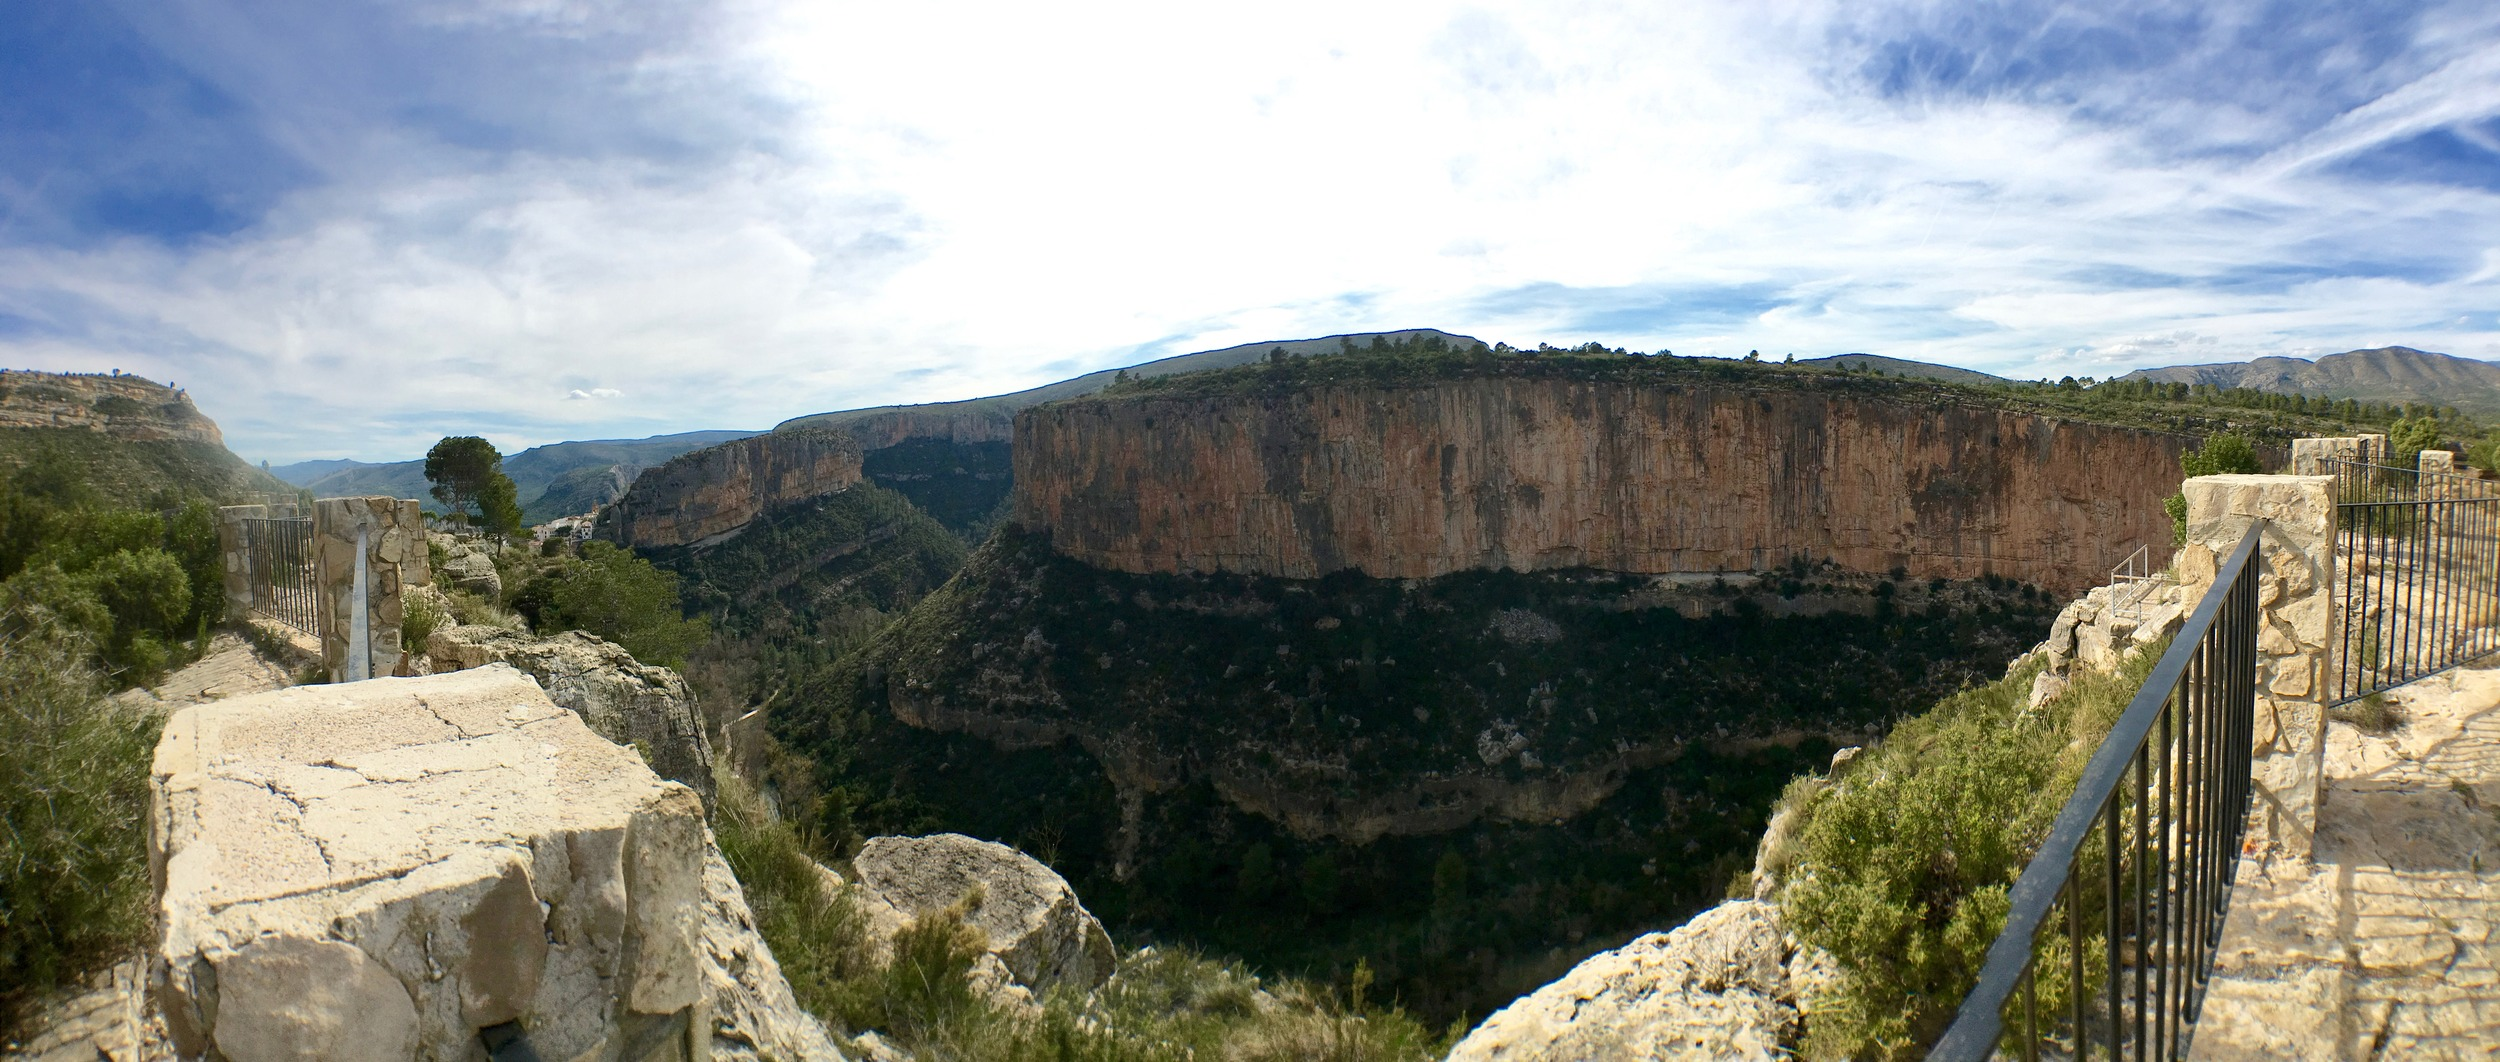 The climbing gorge from the balcony of the  El Altico refugio